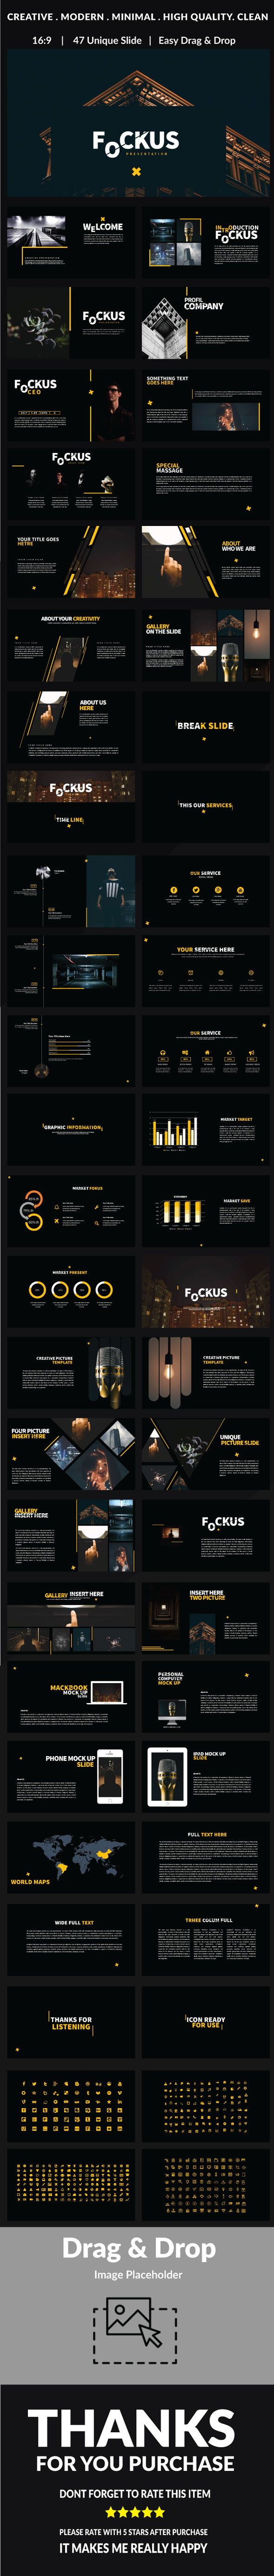 Fockus - Multipurpose Powerpoint - #PowerPoint #Templates #Presentation Templates Download here: https://graphicriver.net/item/fockus-multipurpose-powerpoint/19534286?ref=alena994